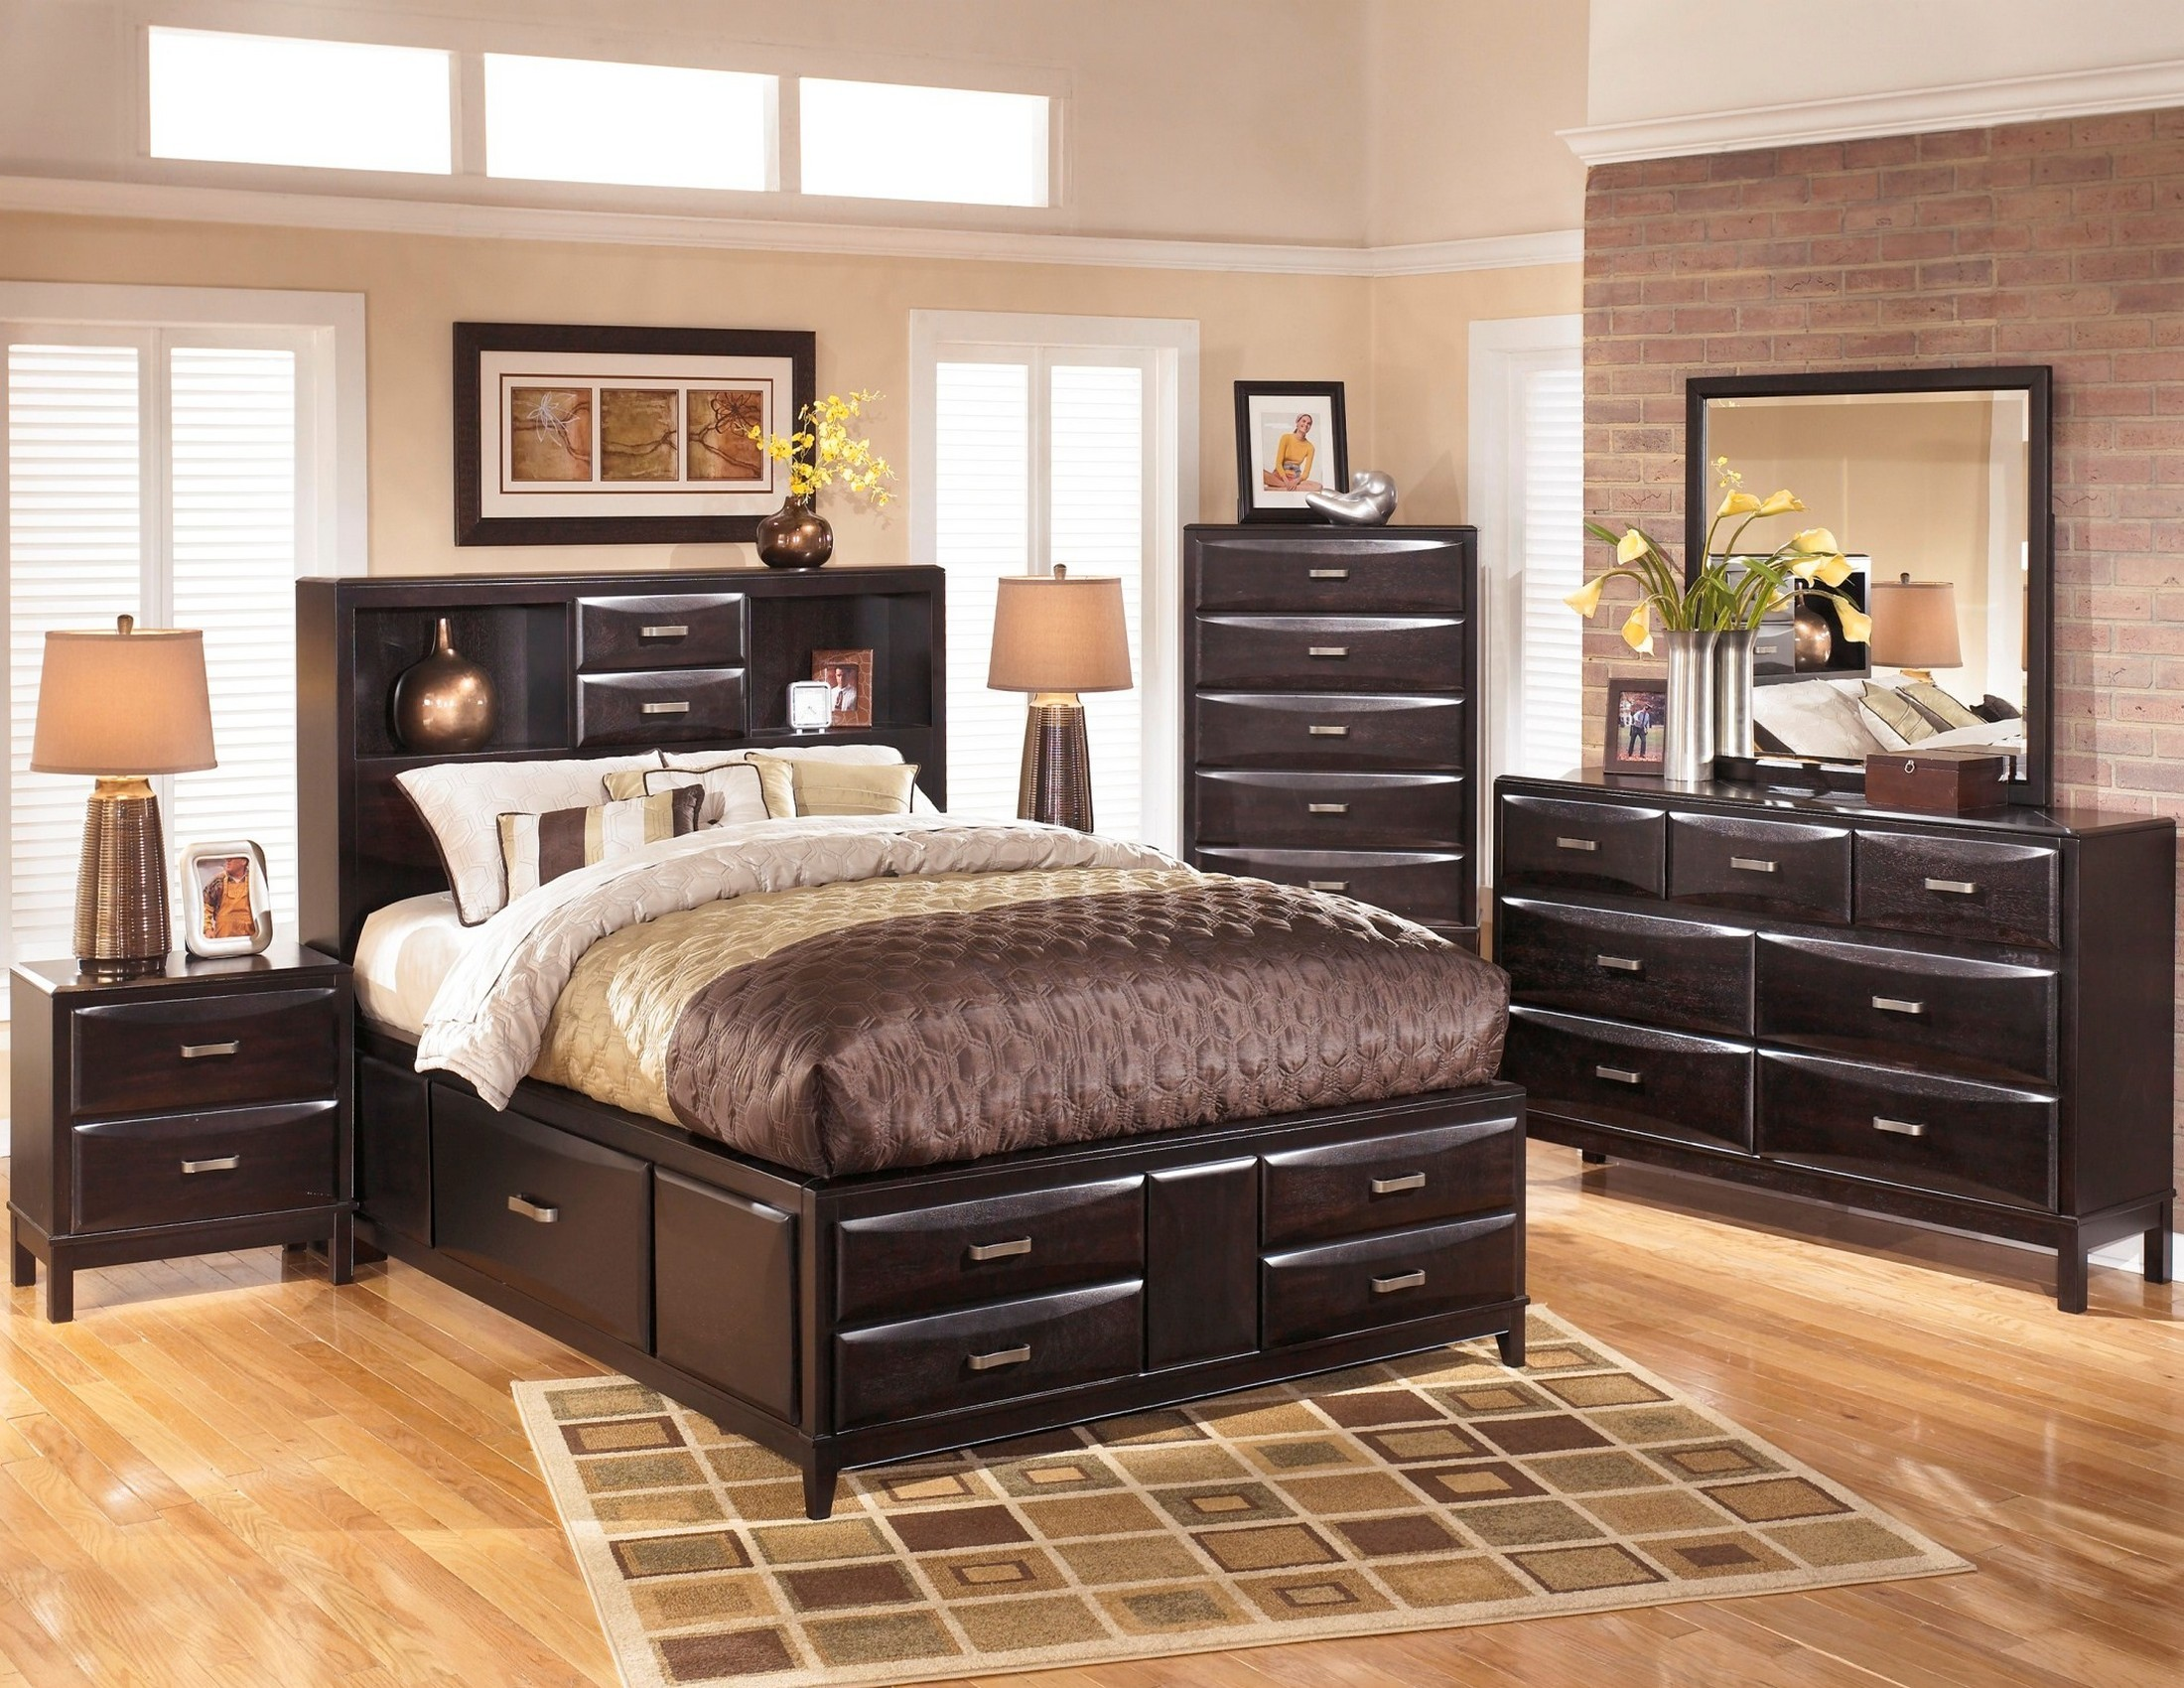 style bed oak freight weathered american mansion dark hayward bedroom brown room set